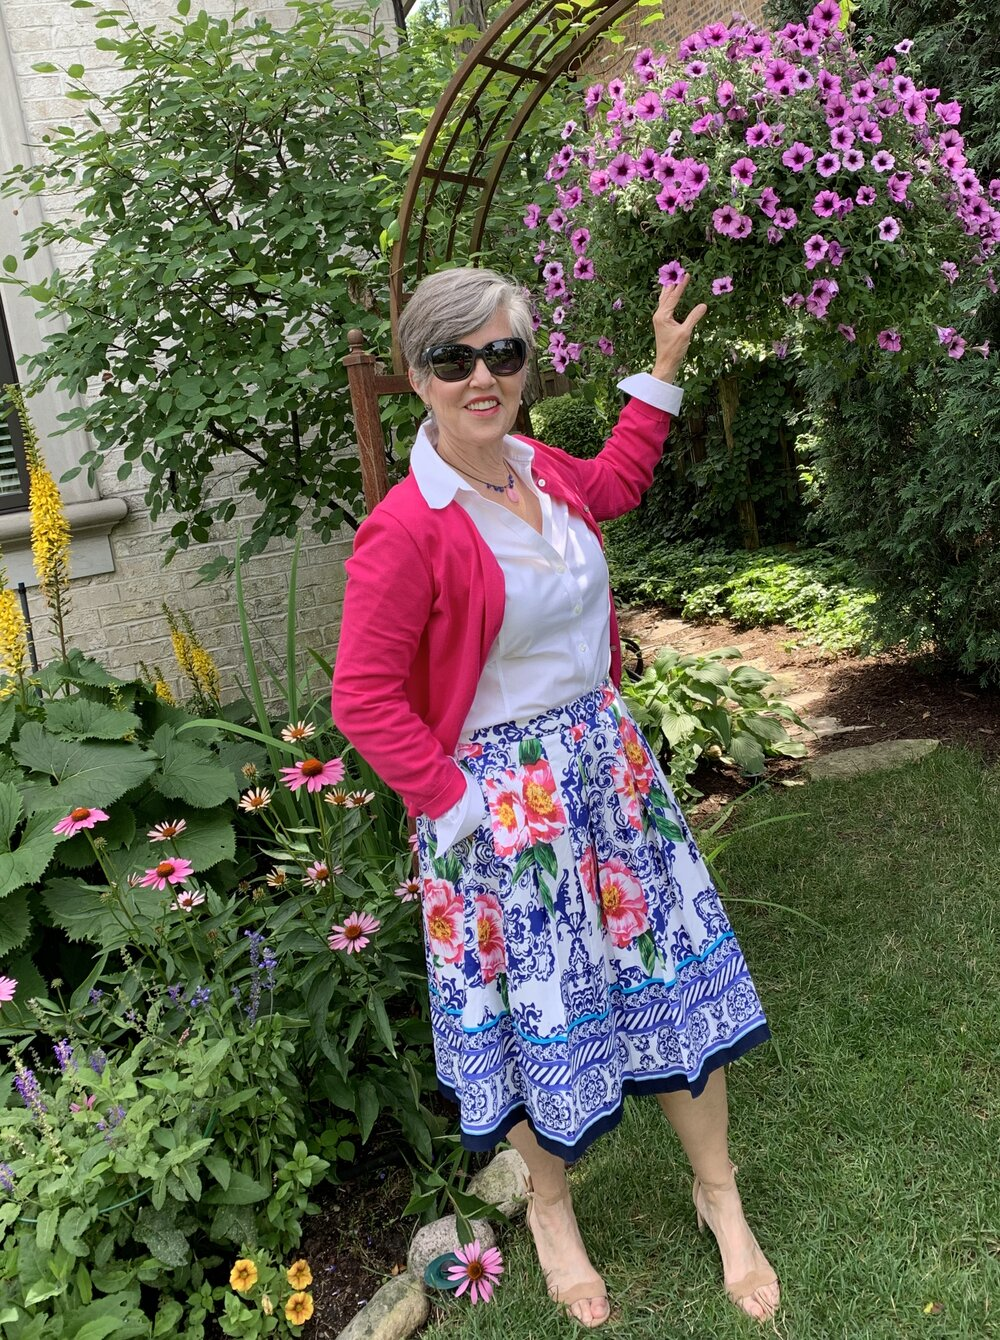 Isn't this a great fit and flare skirt?  I love it with the blouse and cardigan.  Check out my blog (Drjuliesfunlife) for details.